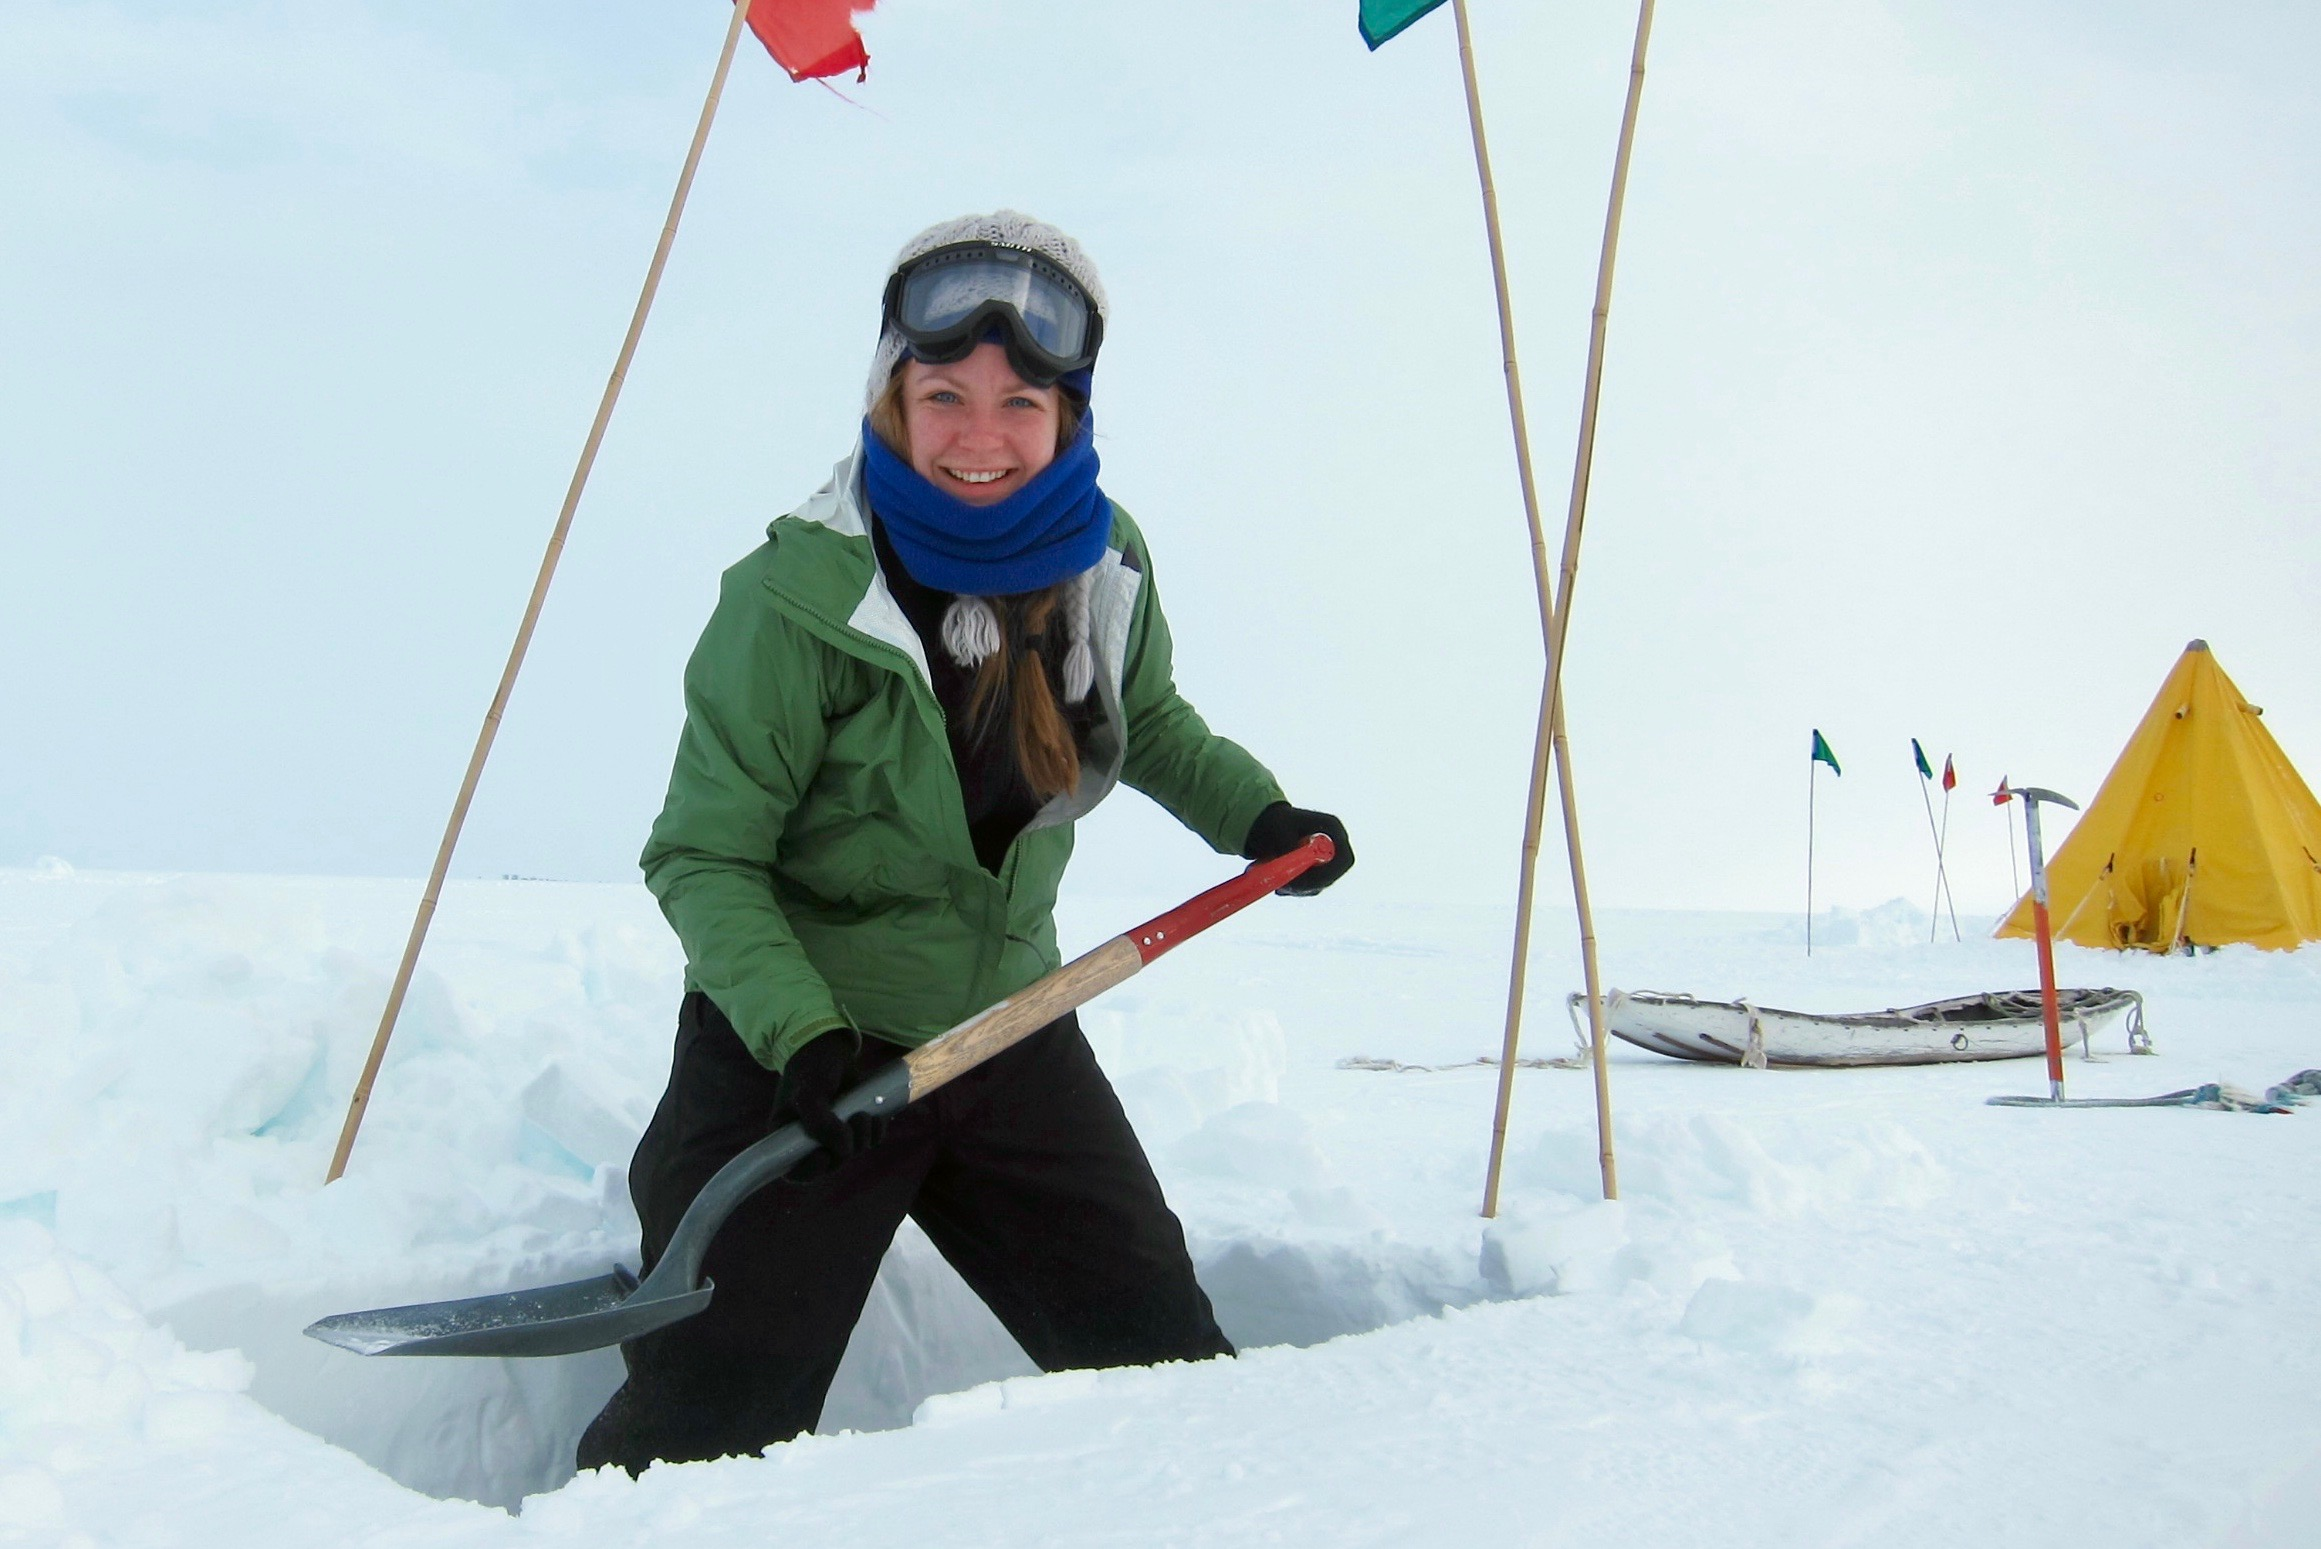 Charting the experiences of women in Antarctica